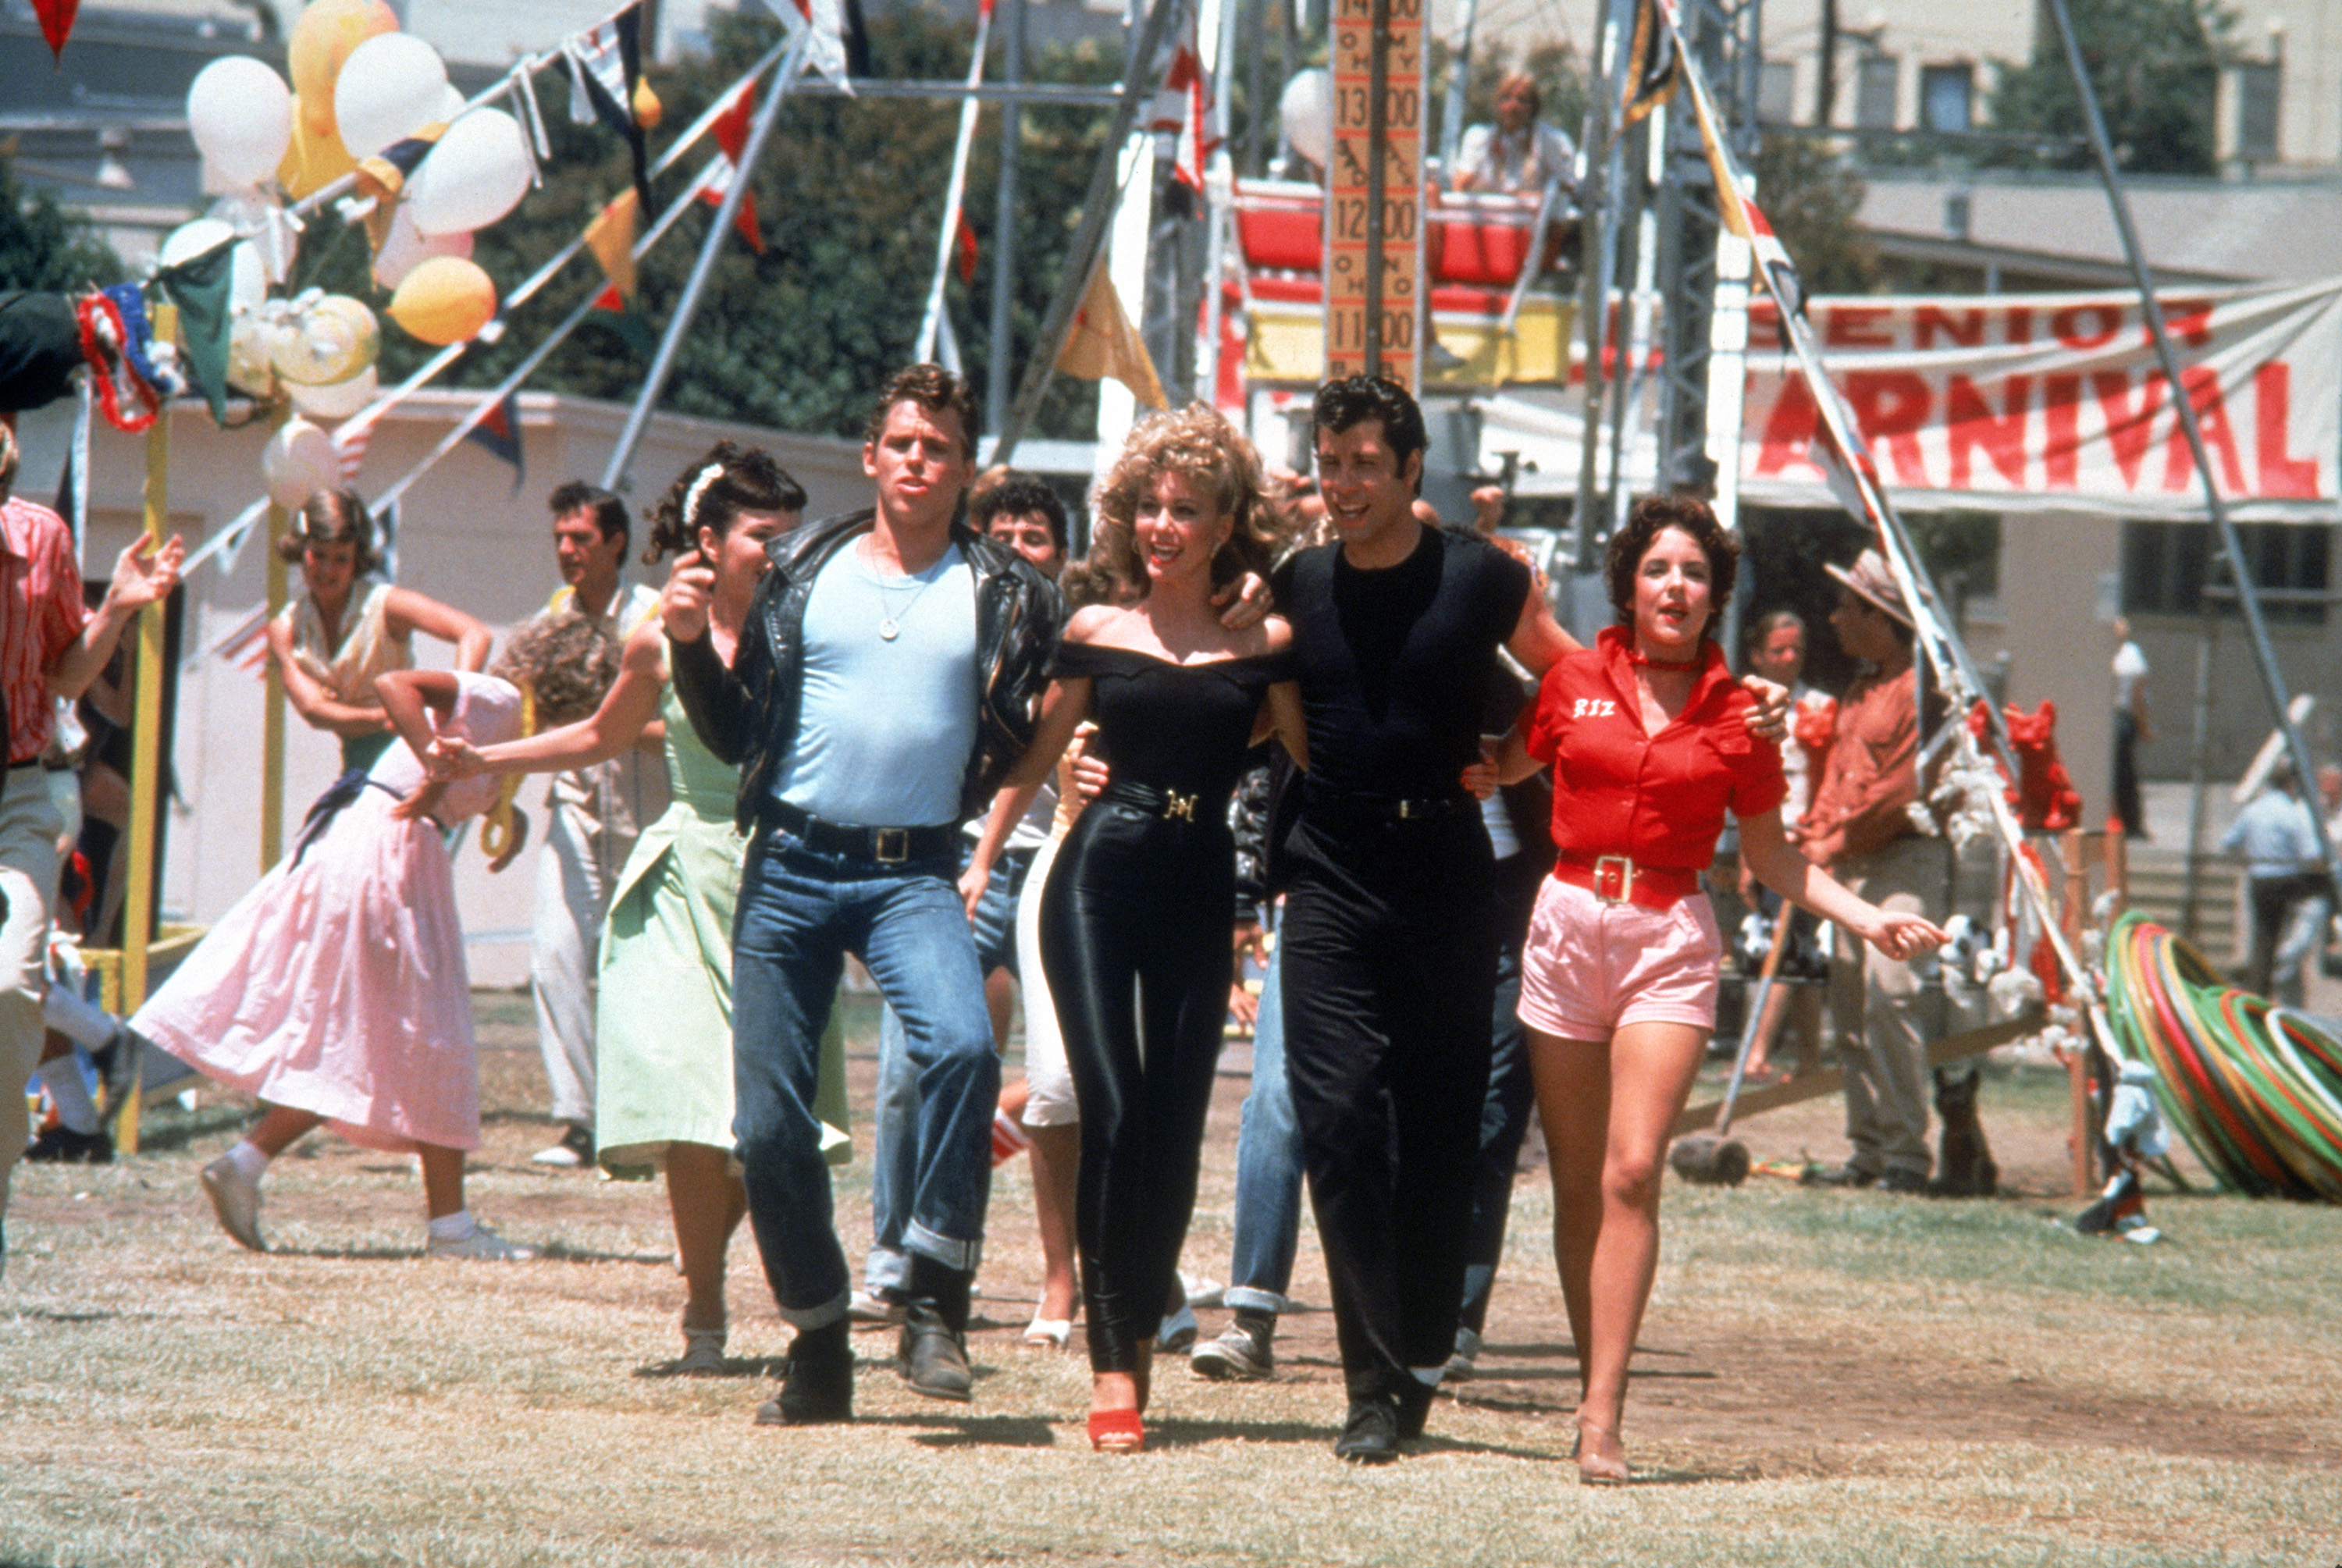 40th anniversary Grease outdoor cinema experience